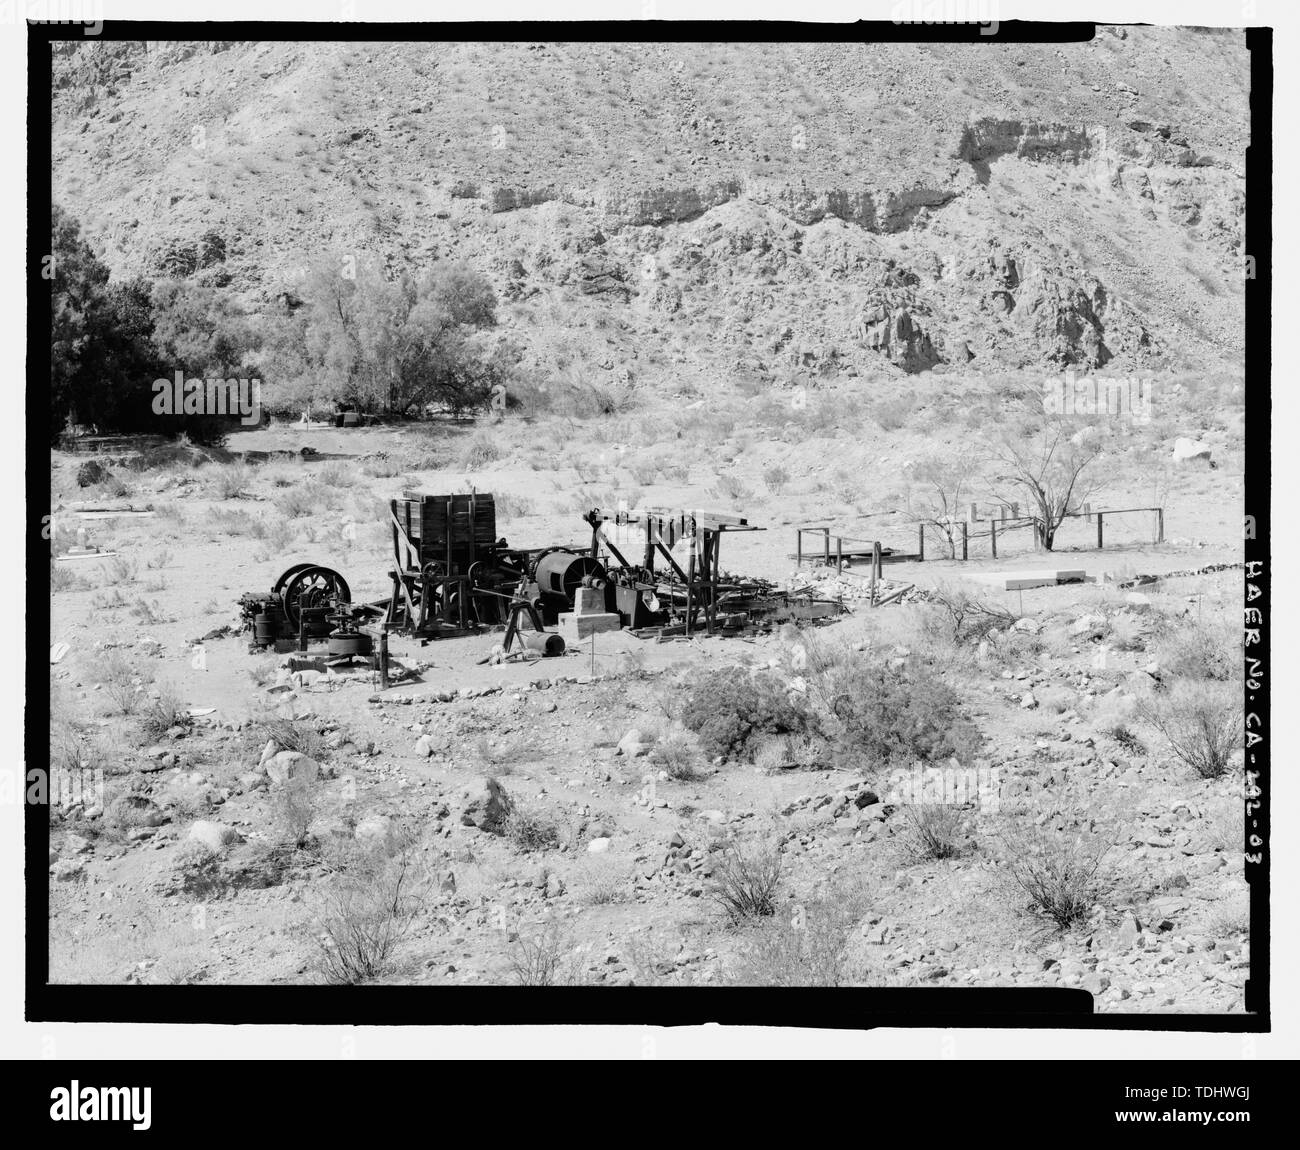 OVERVIEW OF GOLD HILL MILL, ROAD, AND WARM SPRINGS CAMP BUILDINGS, LOOKING SOUTHWEST. - Gold Hill Mill, Warm Spring Canyon Road, Death Valley Junction, Inyo County, CA - Stock Image